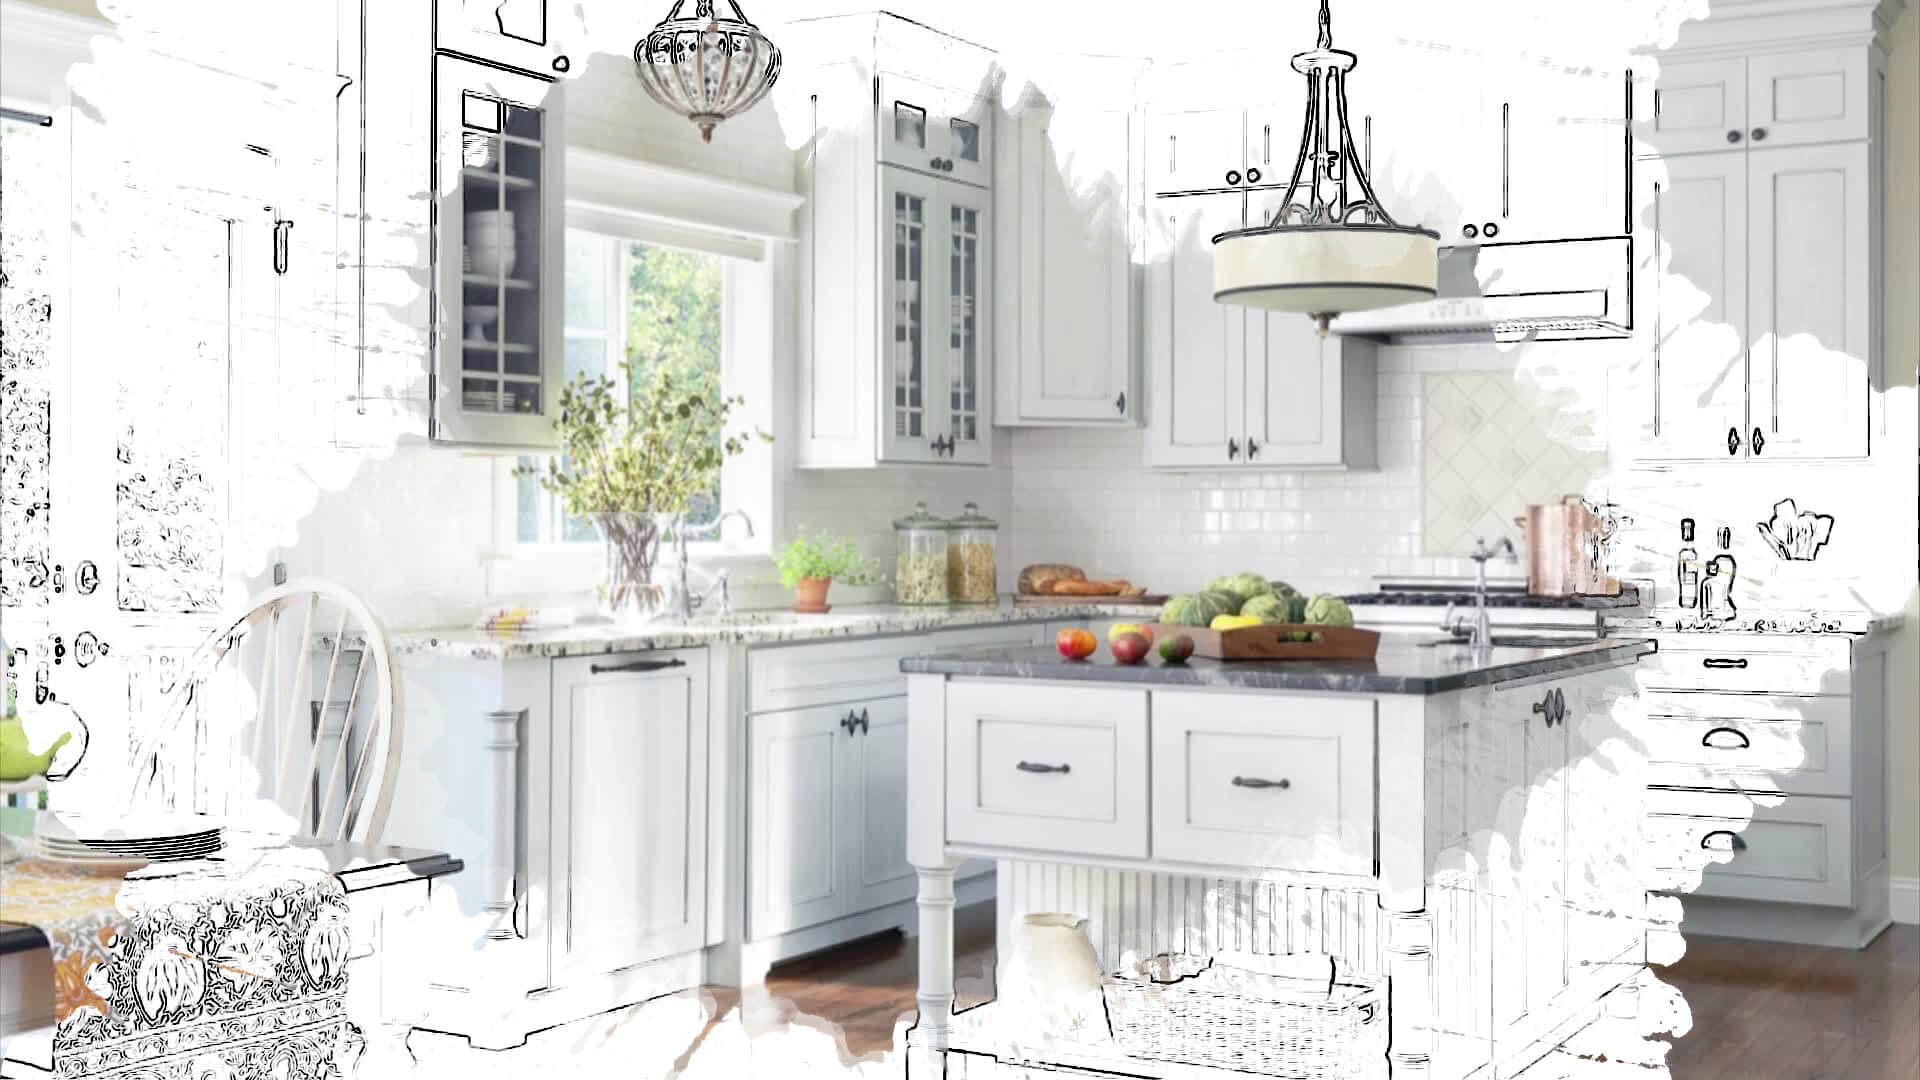 remodeling services atlanta ga | free on-site renovation quote | visign